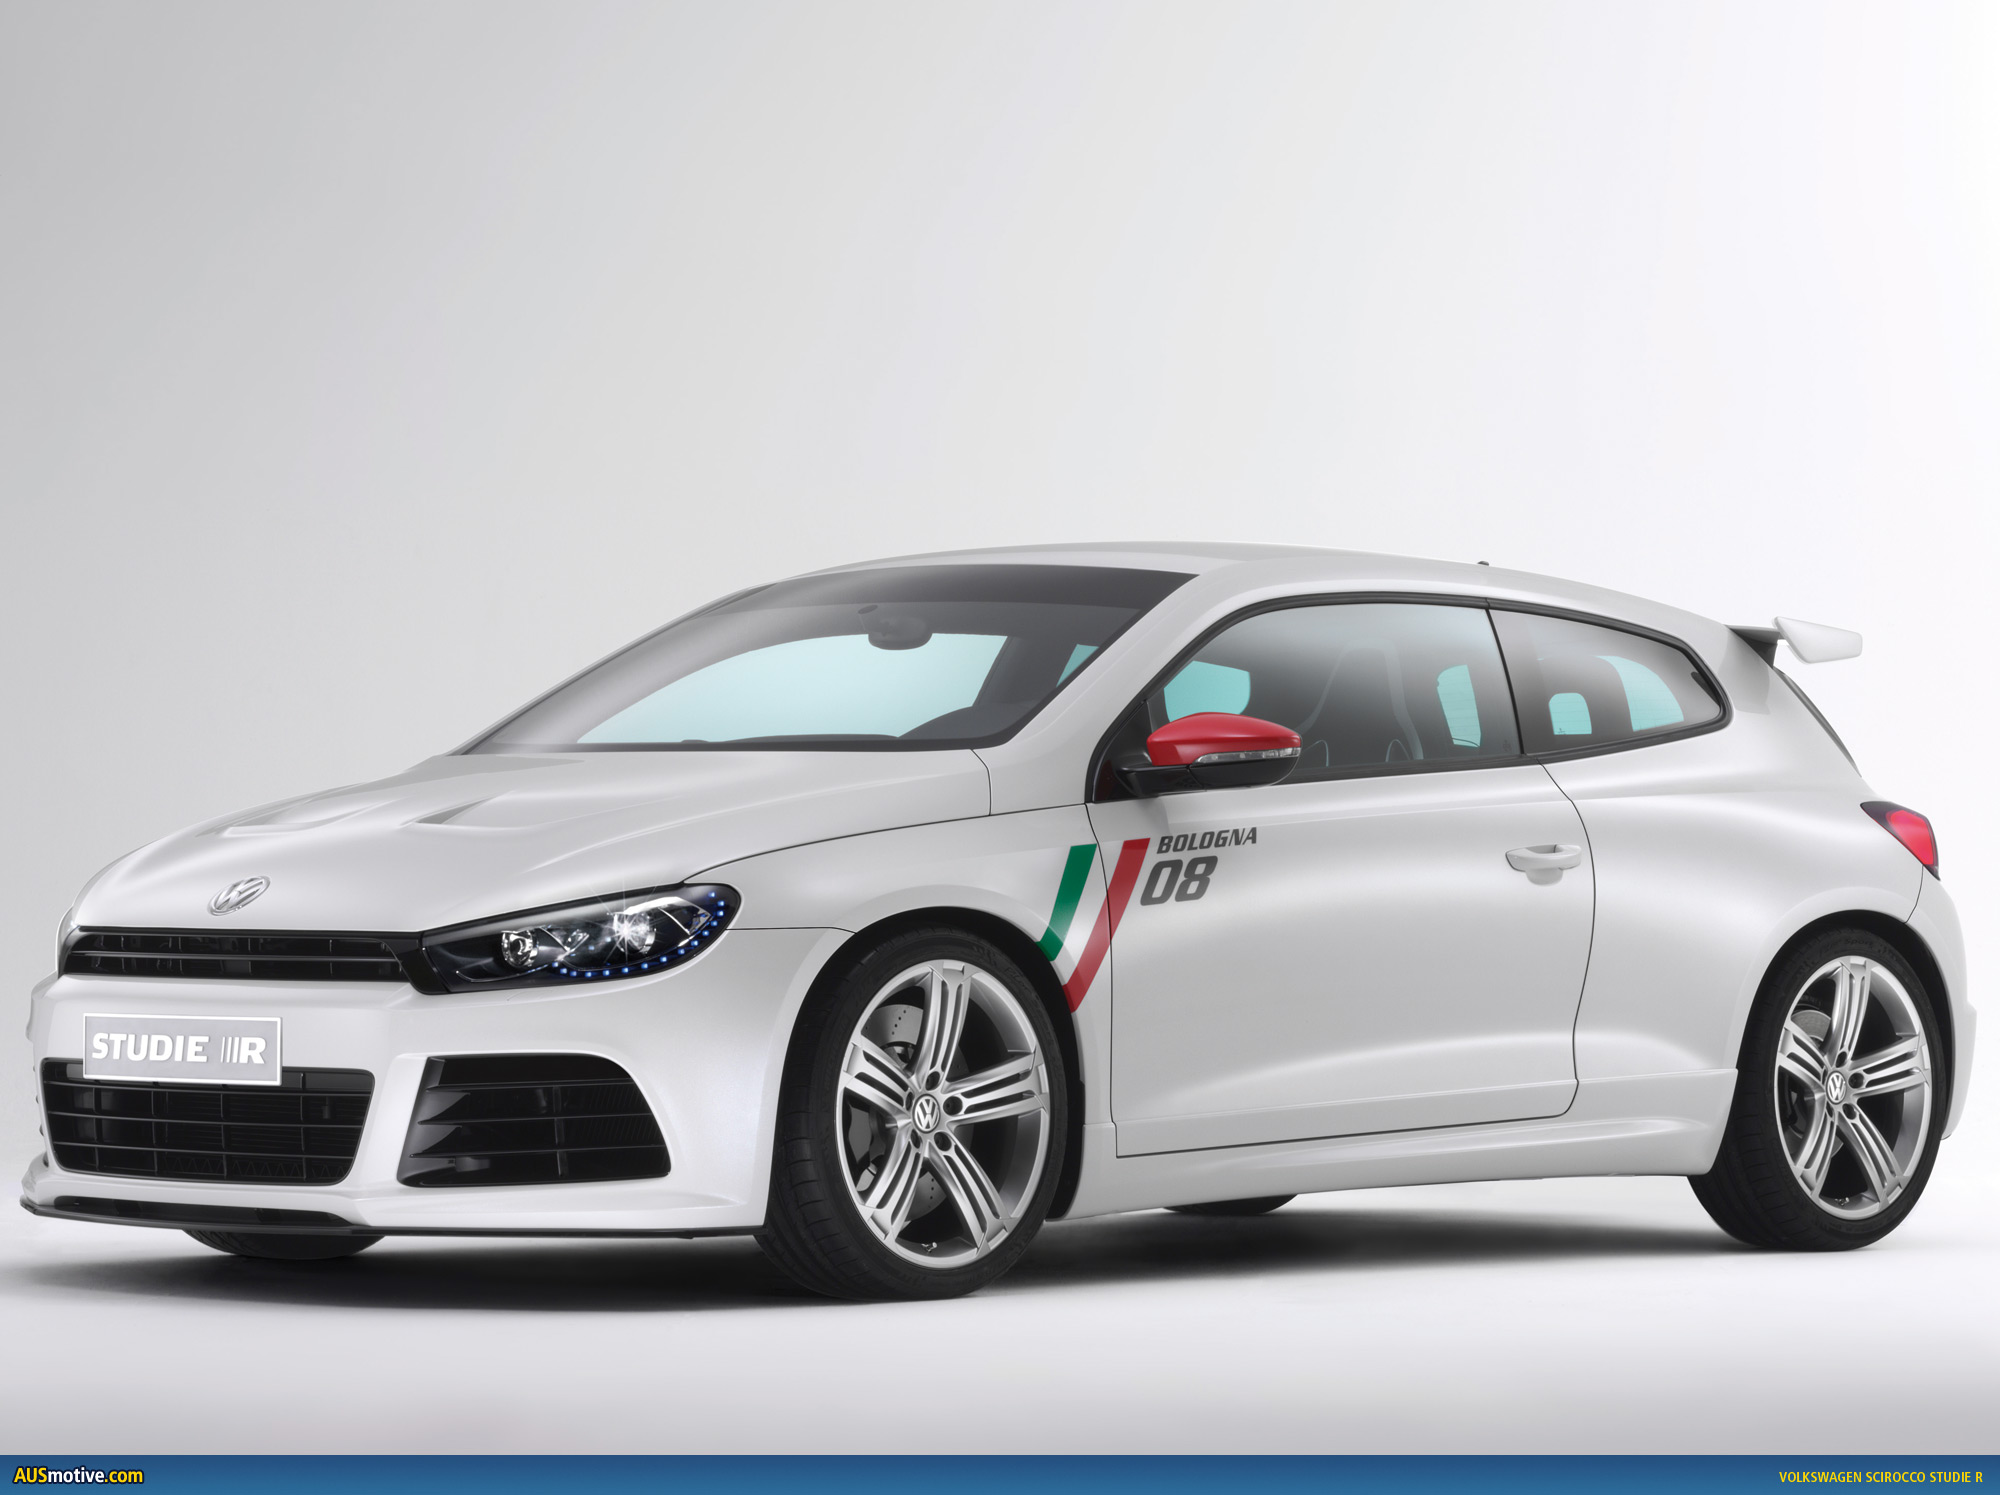 volkswagen scirocco studie r adds spice to bologna. Black Bedroom Furniture Sets. Home Design Ideas